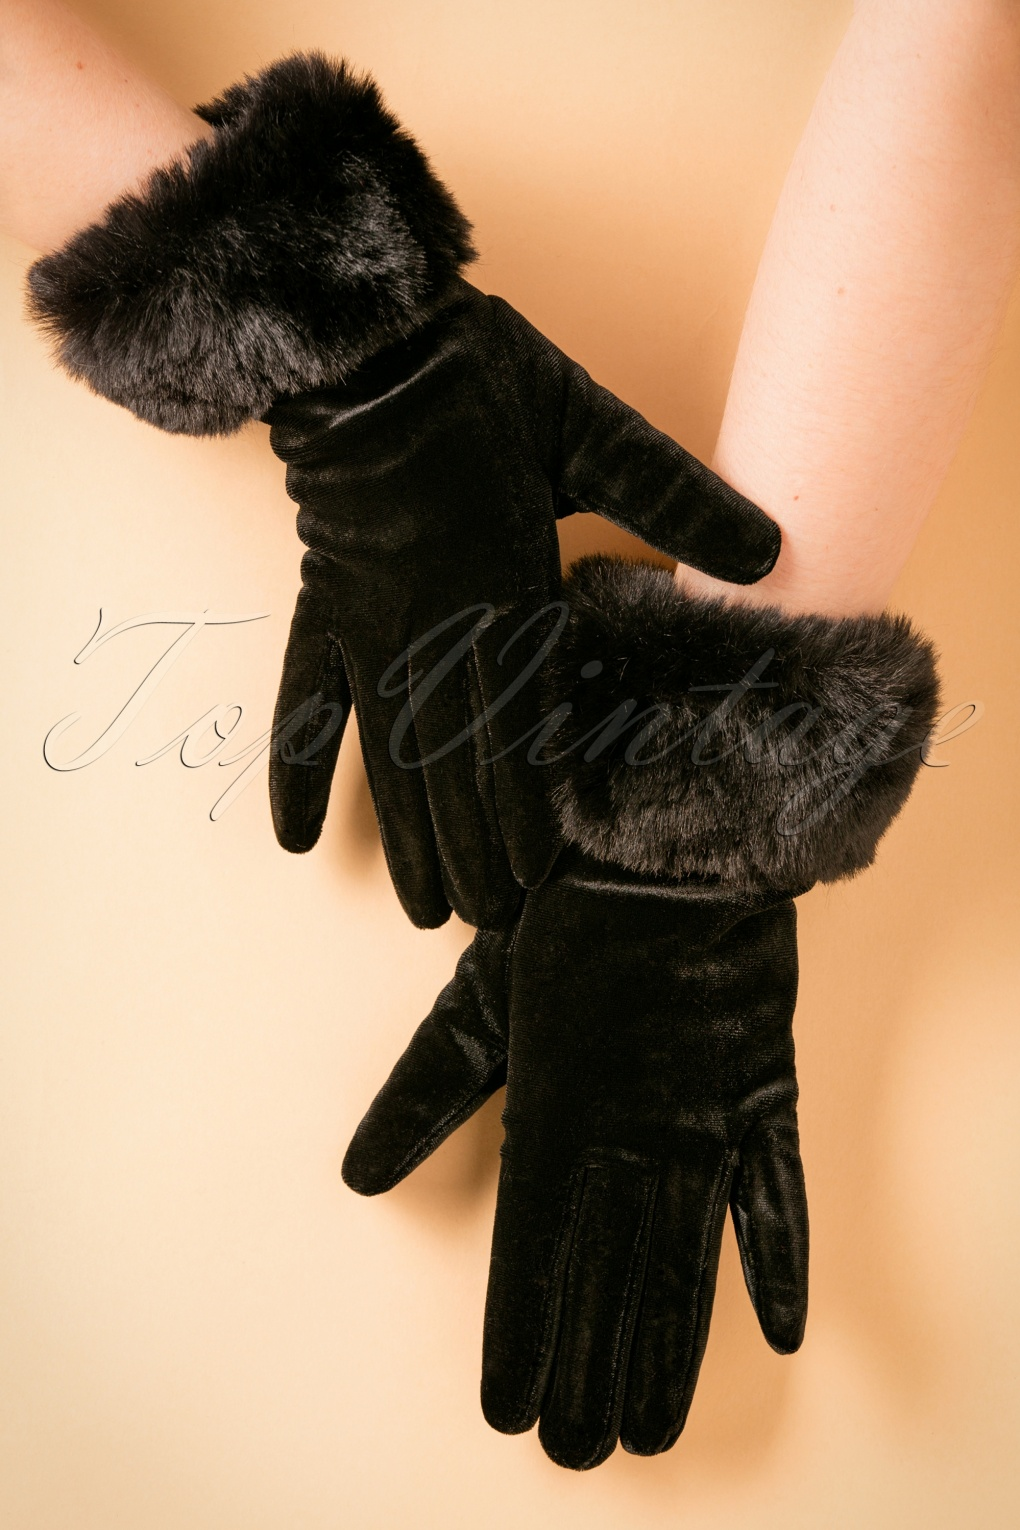 Vintage Style Gloves 50s Valentina Velvet Gloves in Black £22.05 AT vintagedancer.com